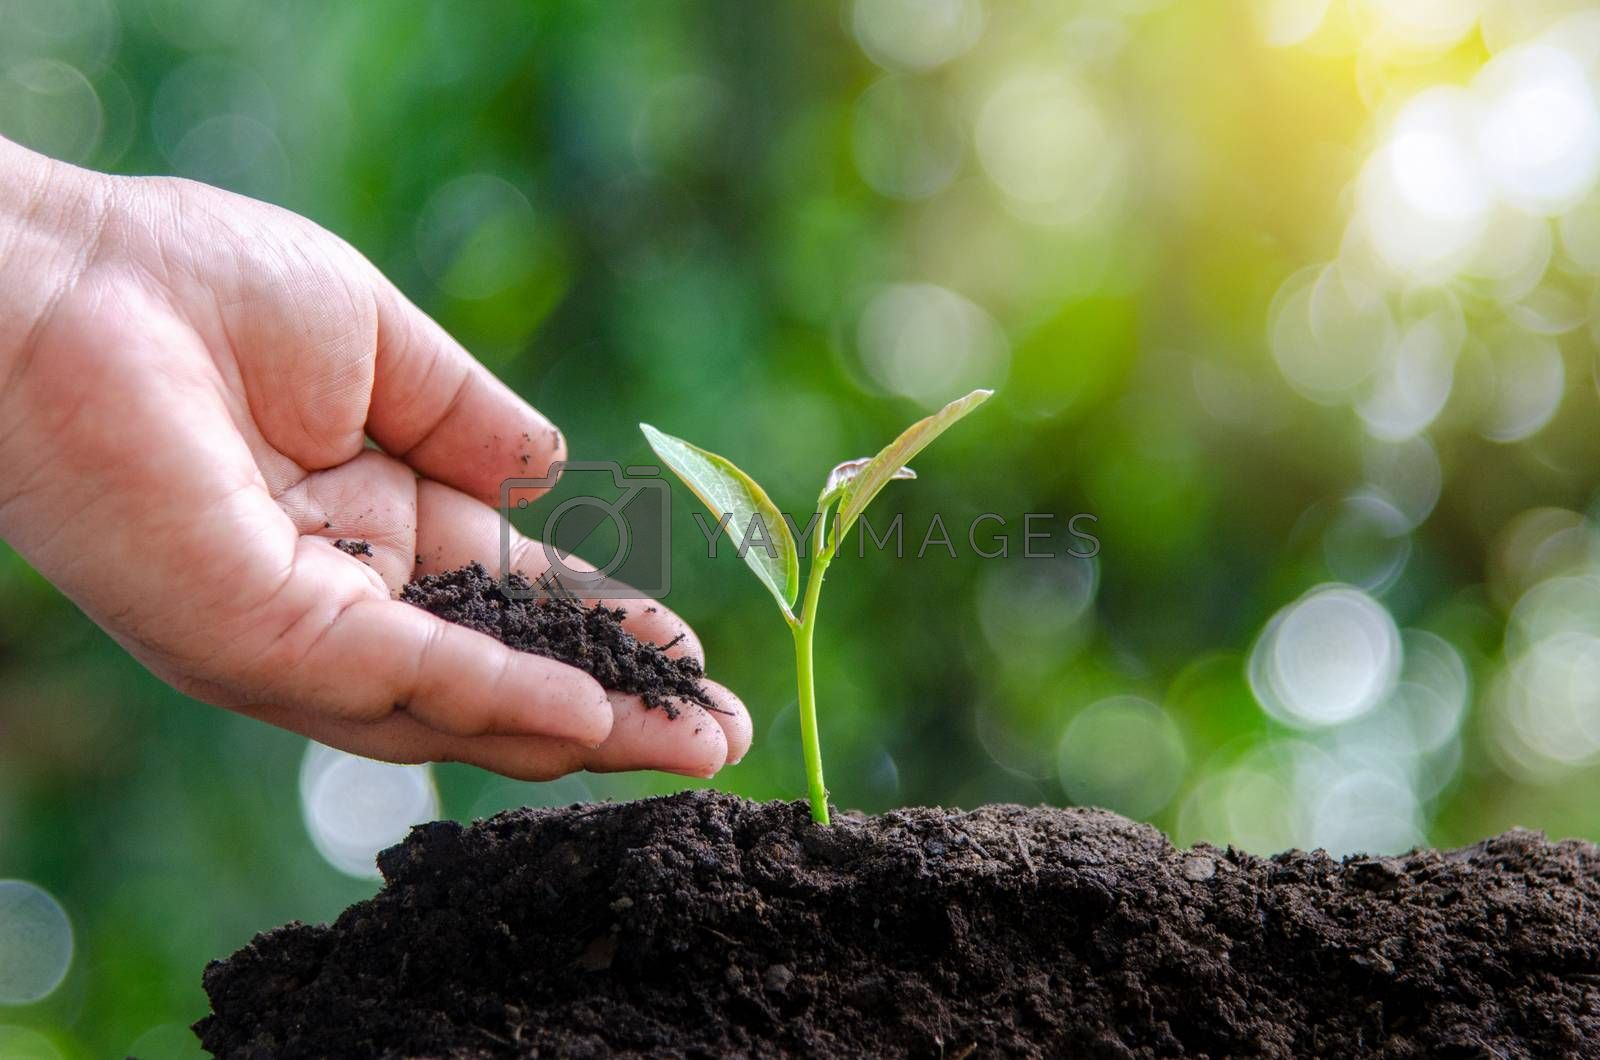 tree sapling hand planting sprout in soil with sunset close up male hand planting young tree over green background by Sarayut